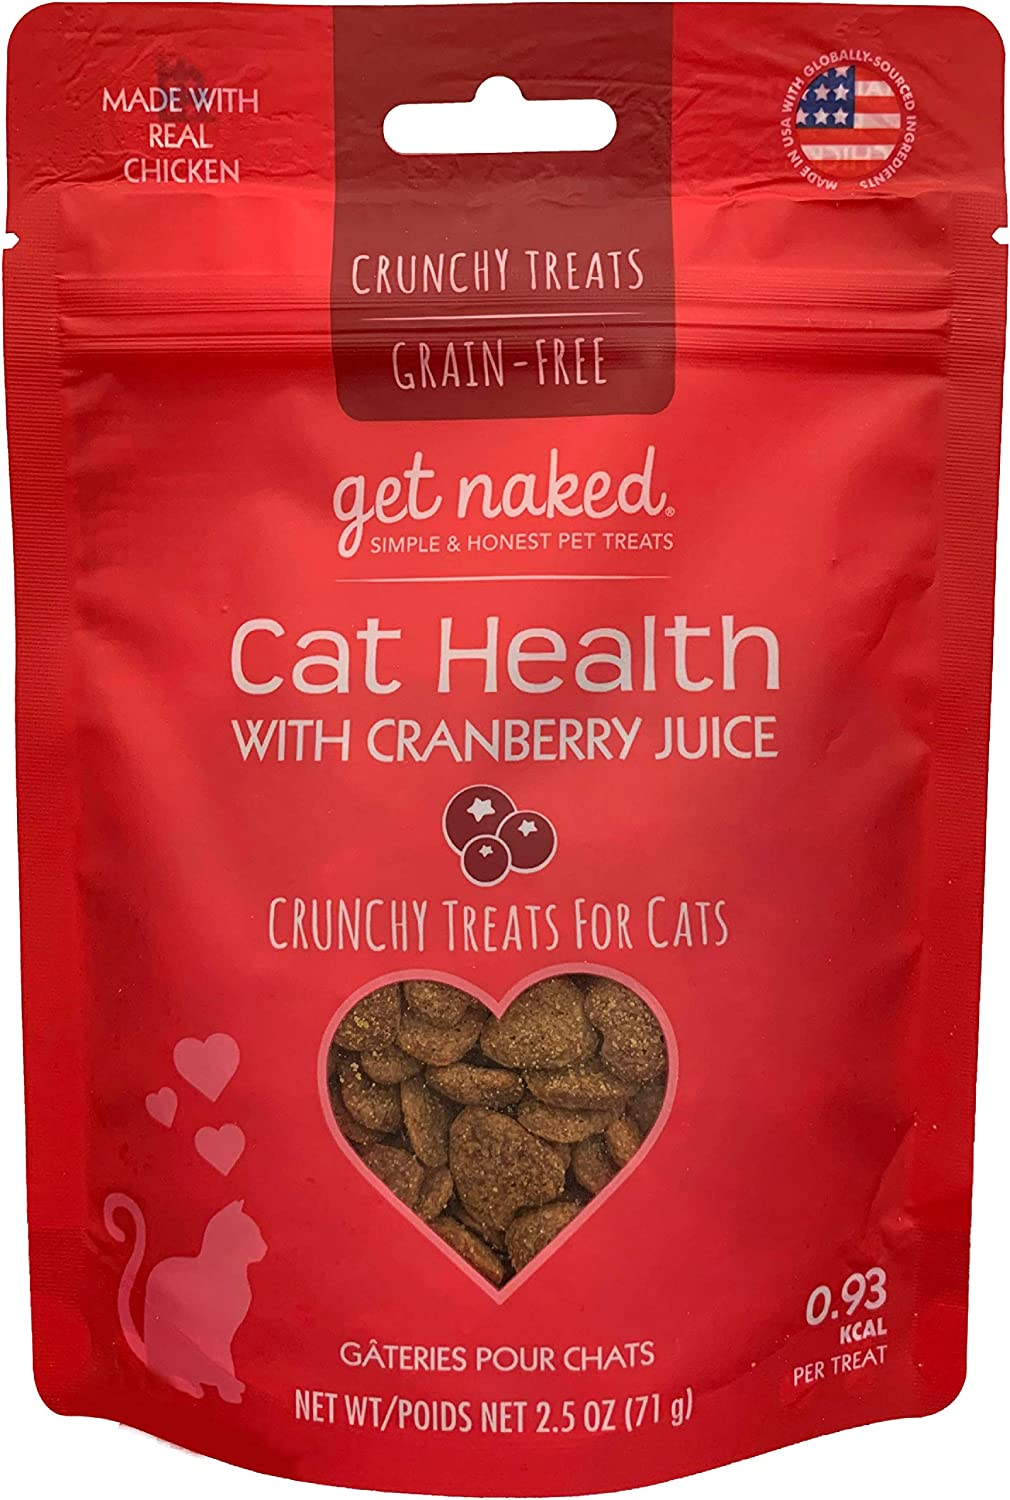 Get Naked Urinary Health Crunchy Treats For Cats, Cranberries, (1 Pouch), 2.5 Oz